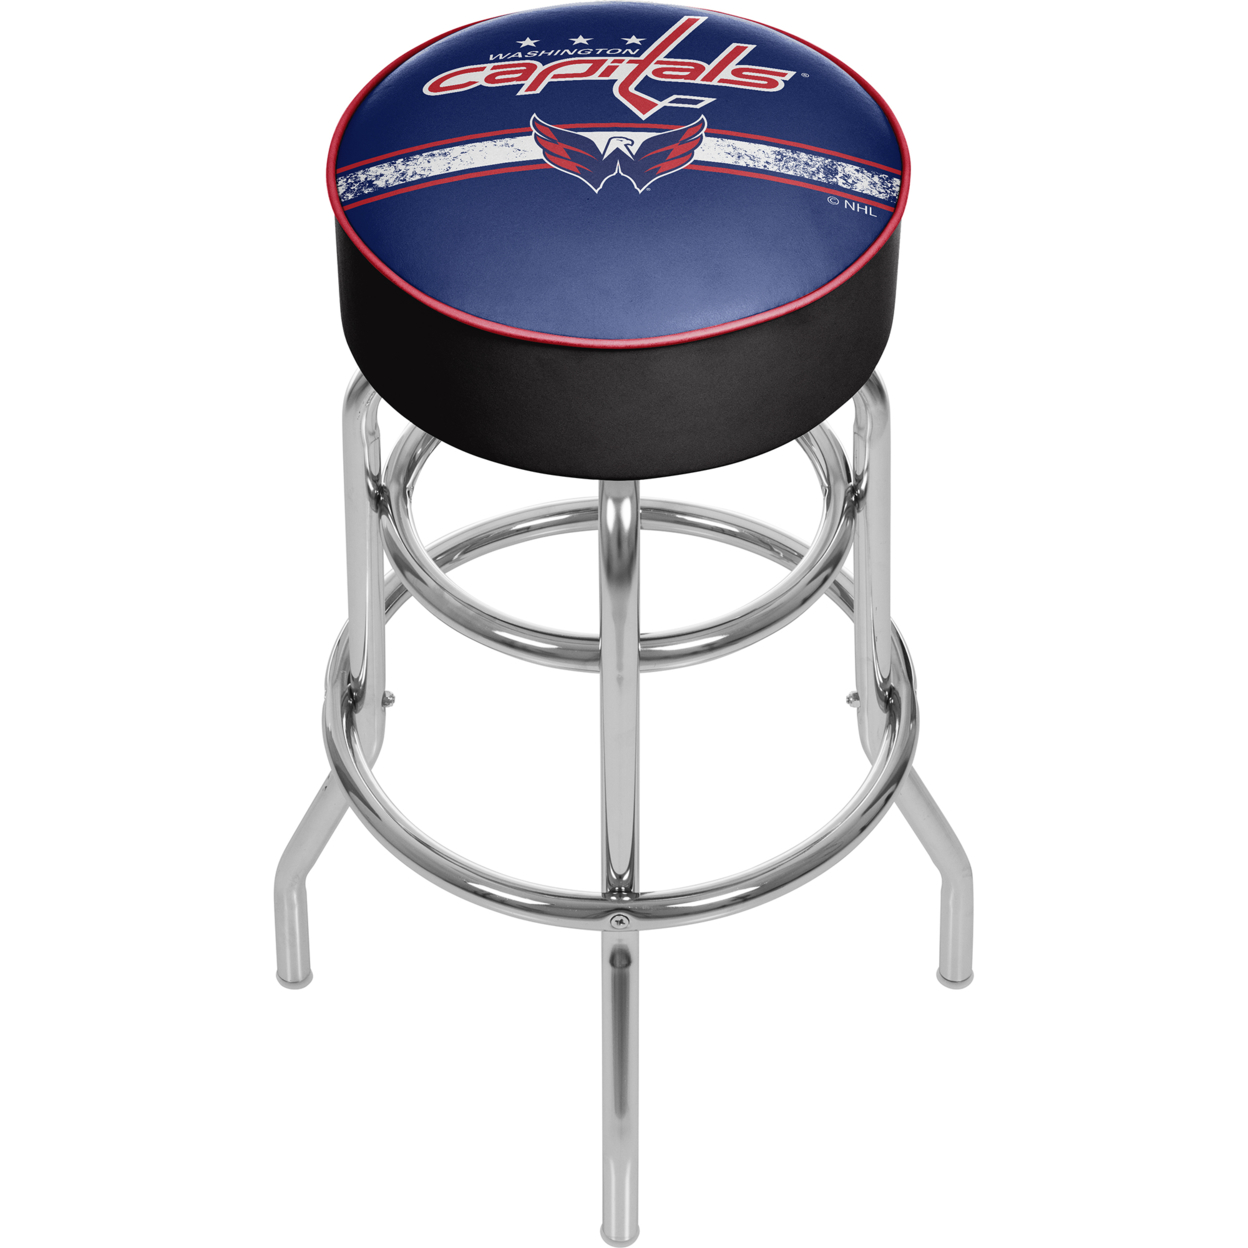 NHL Chrome Padded Swivel Bar Stool 30 Inches High - Washington Capitals сумка на ремне nhl capitals цвет синий 3 5 л 58015